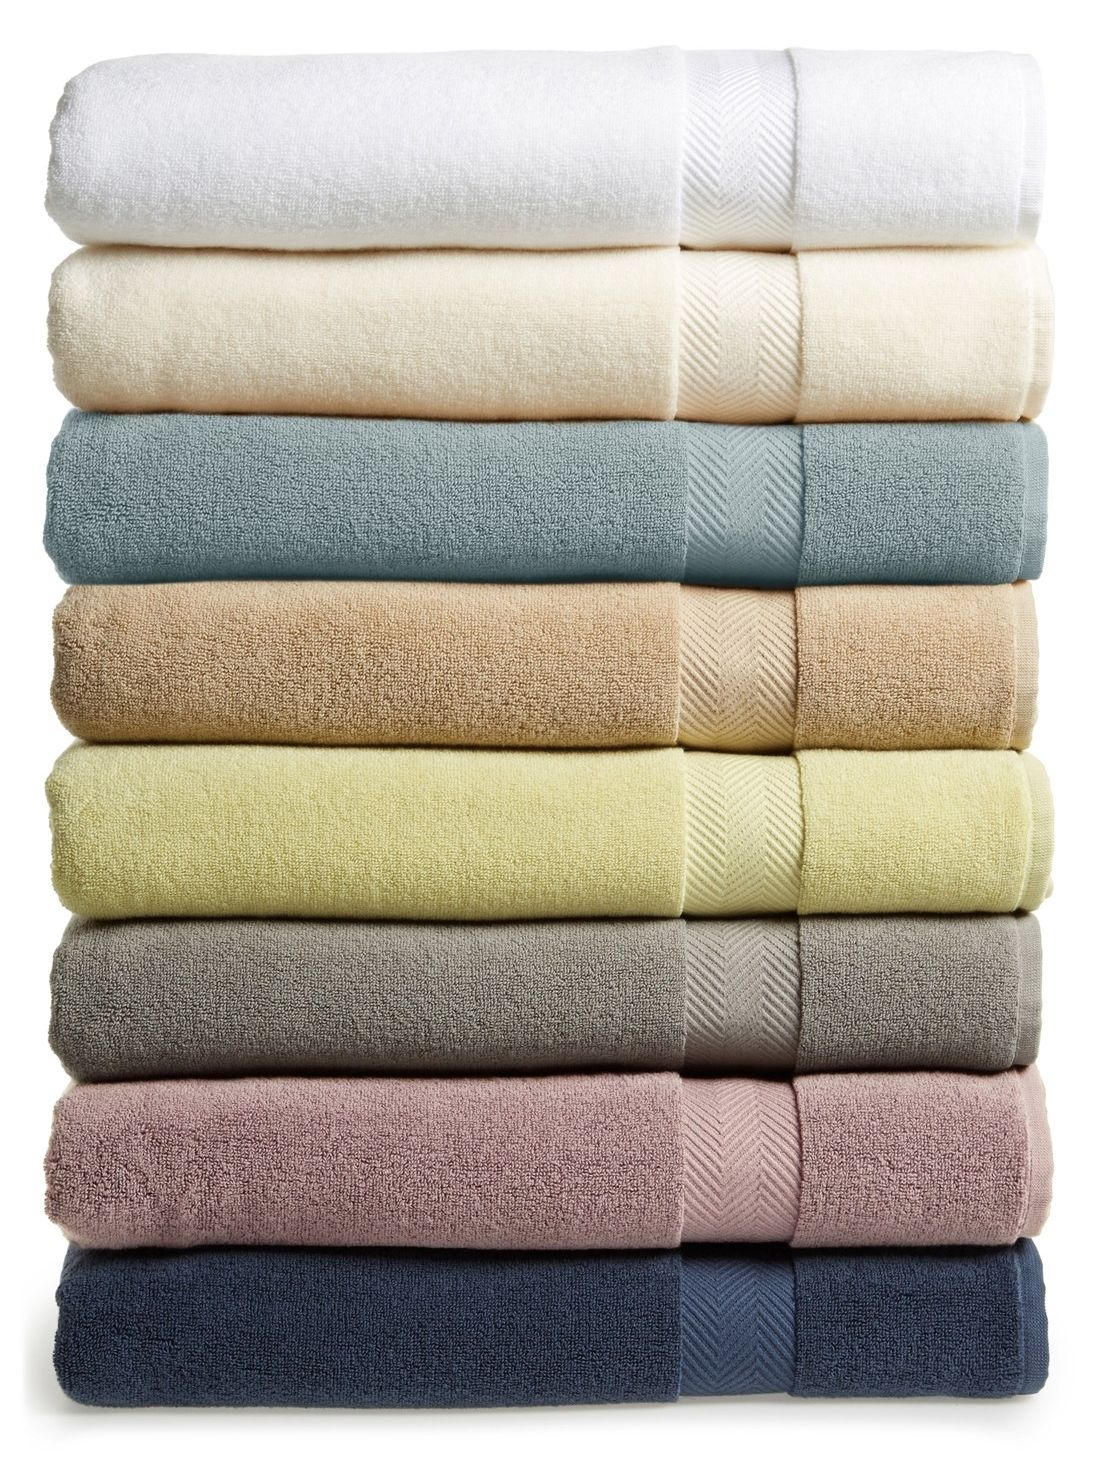 Hydrocotton Bath Towels Pleasing Hydrocotton Bath Towel  Cotton Towels Towels And Tiny Bathrooms Design Decoration